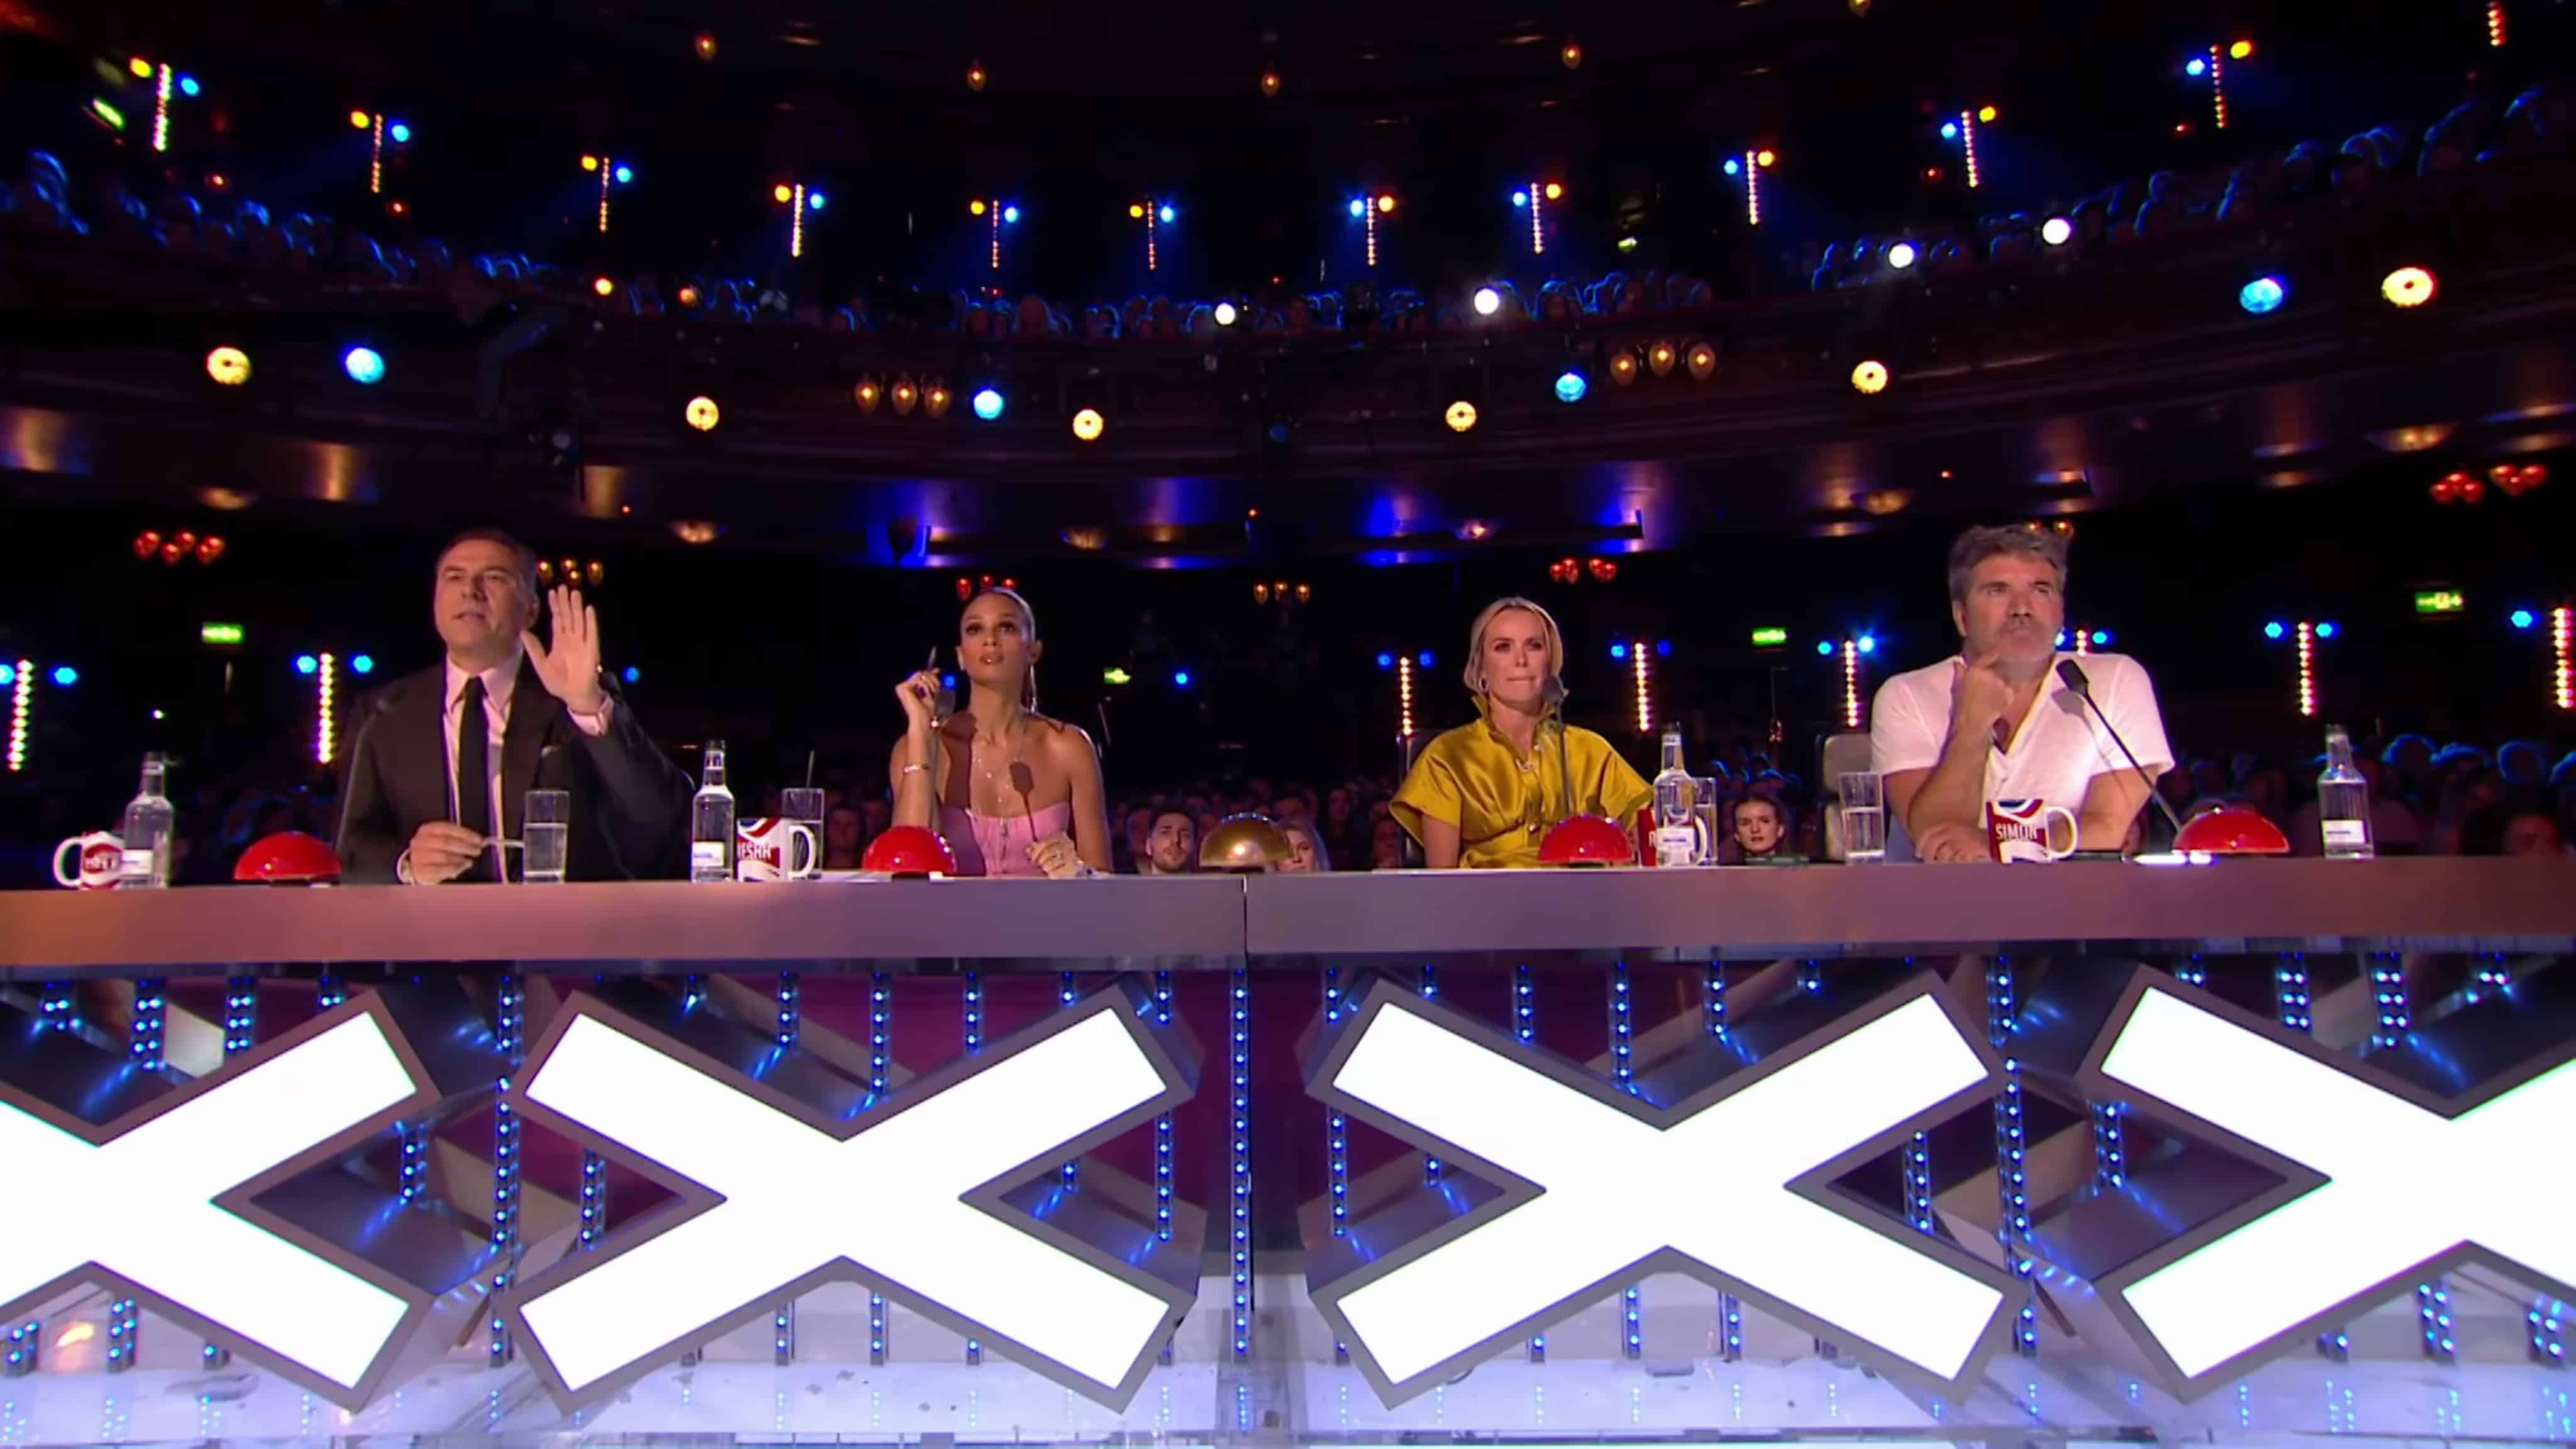 Britain S Got Talent Confirms All Star The Champions Series To Air This Year Britain S Got Talent 2020 Tellymix